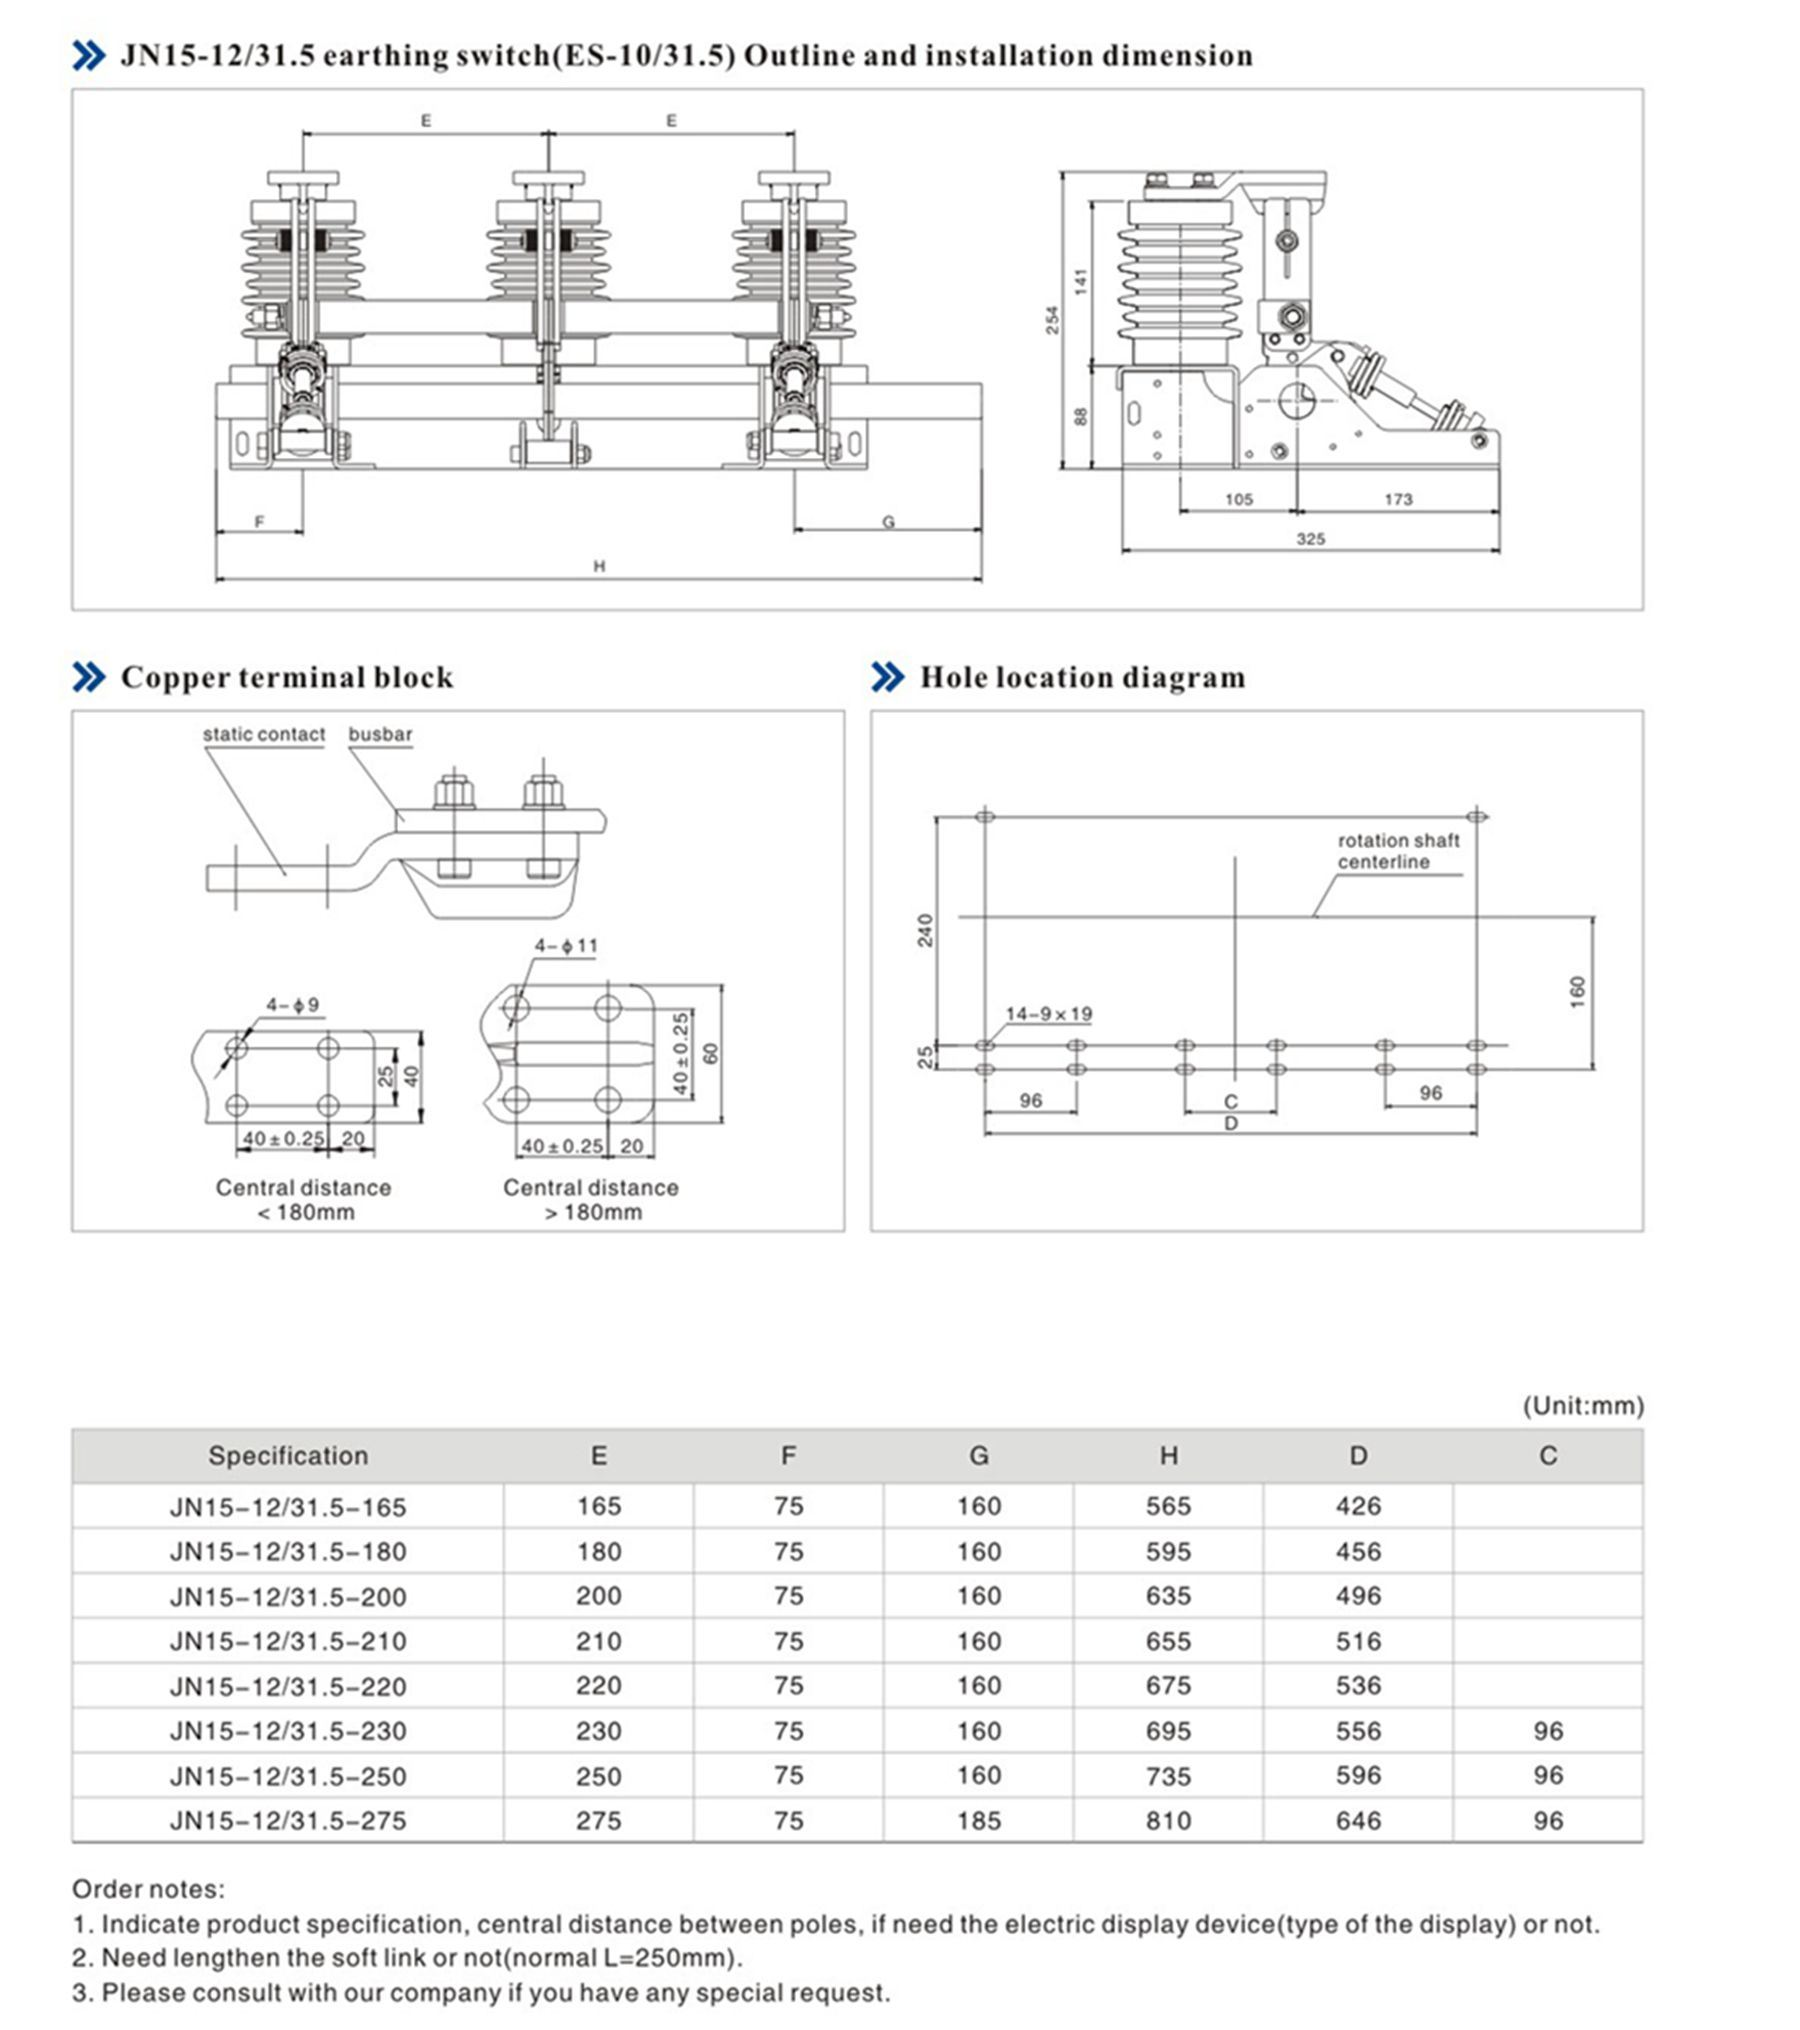 Earthing Switch for 12kv Indoor High-Voltage Switchgear